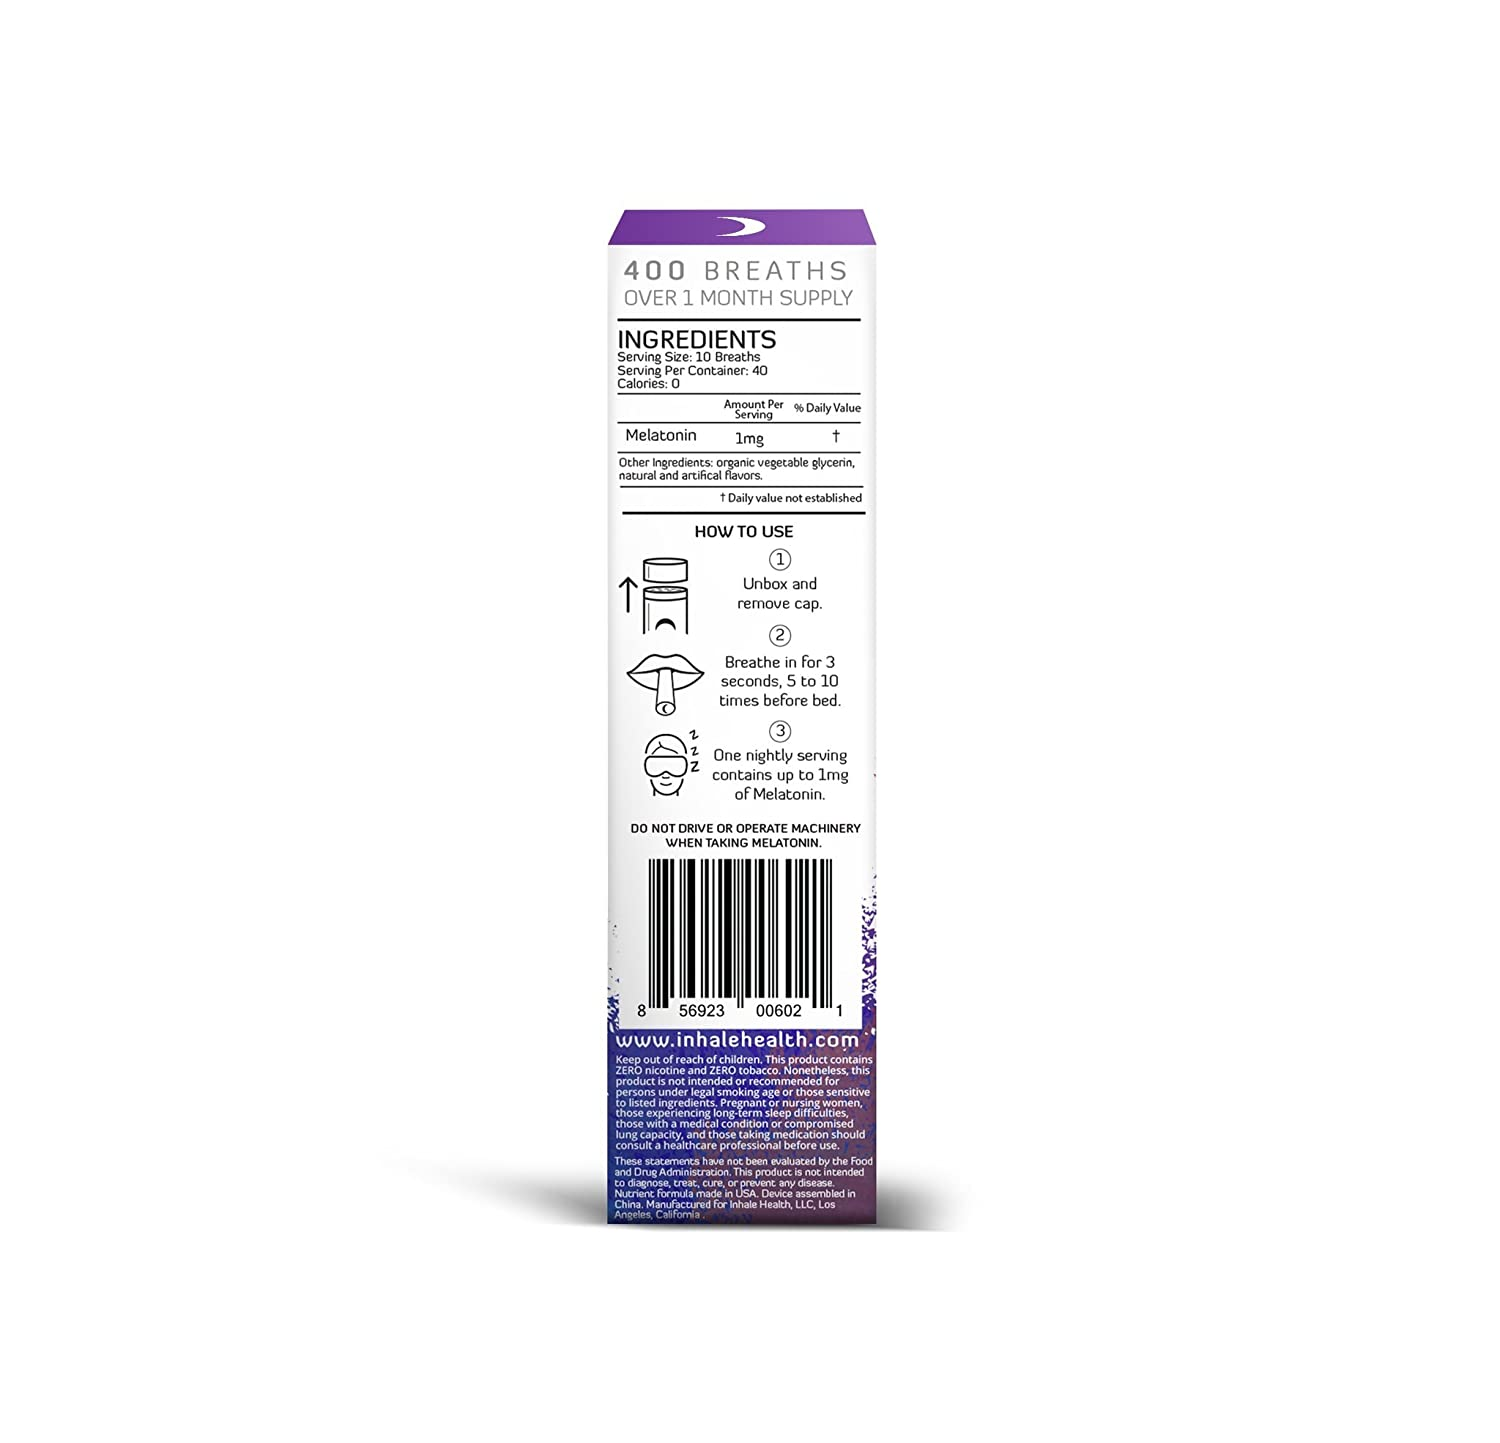 Amazon.com: SLEEP™ Lavender Dream - Melatonin Inhaler: Health & Personal Care